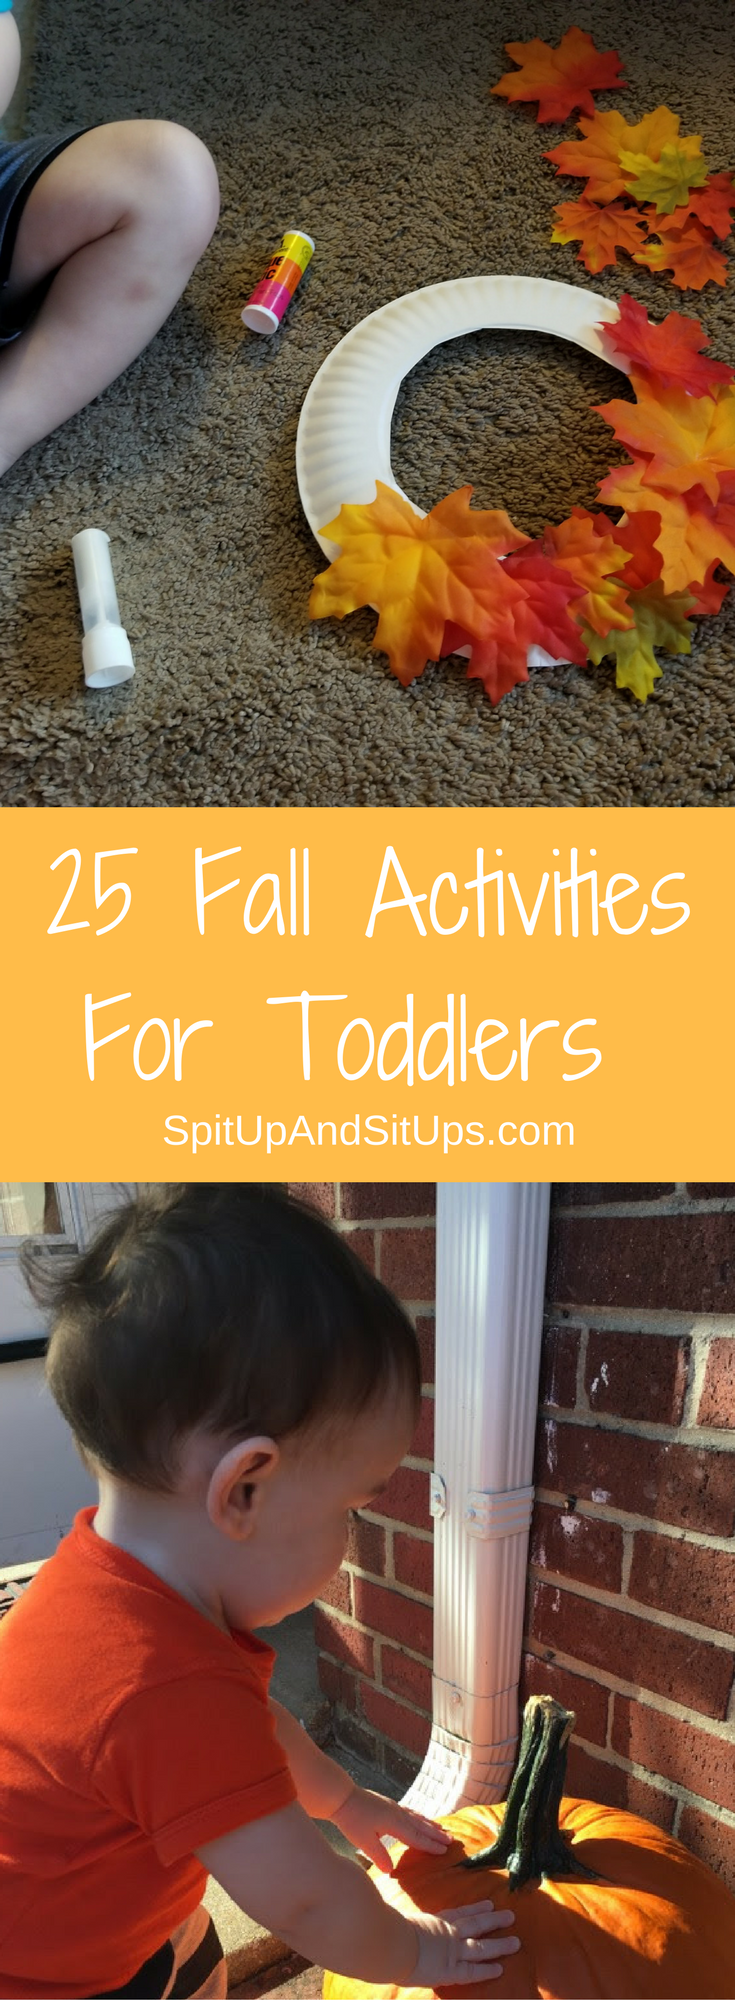 Photo of 25 Fall Activities For Toddlers